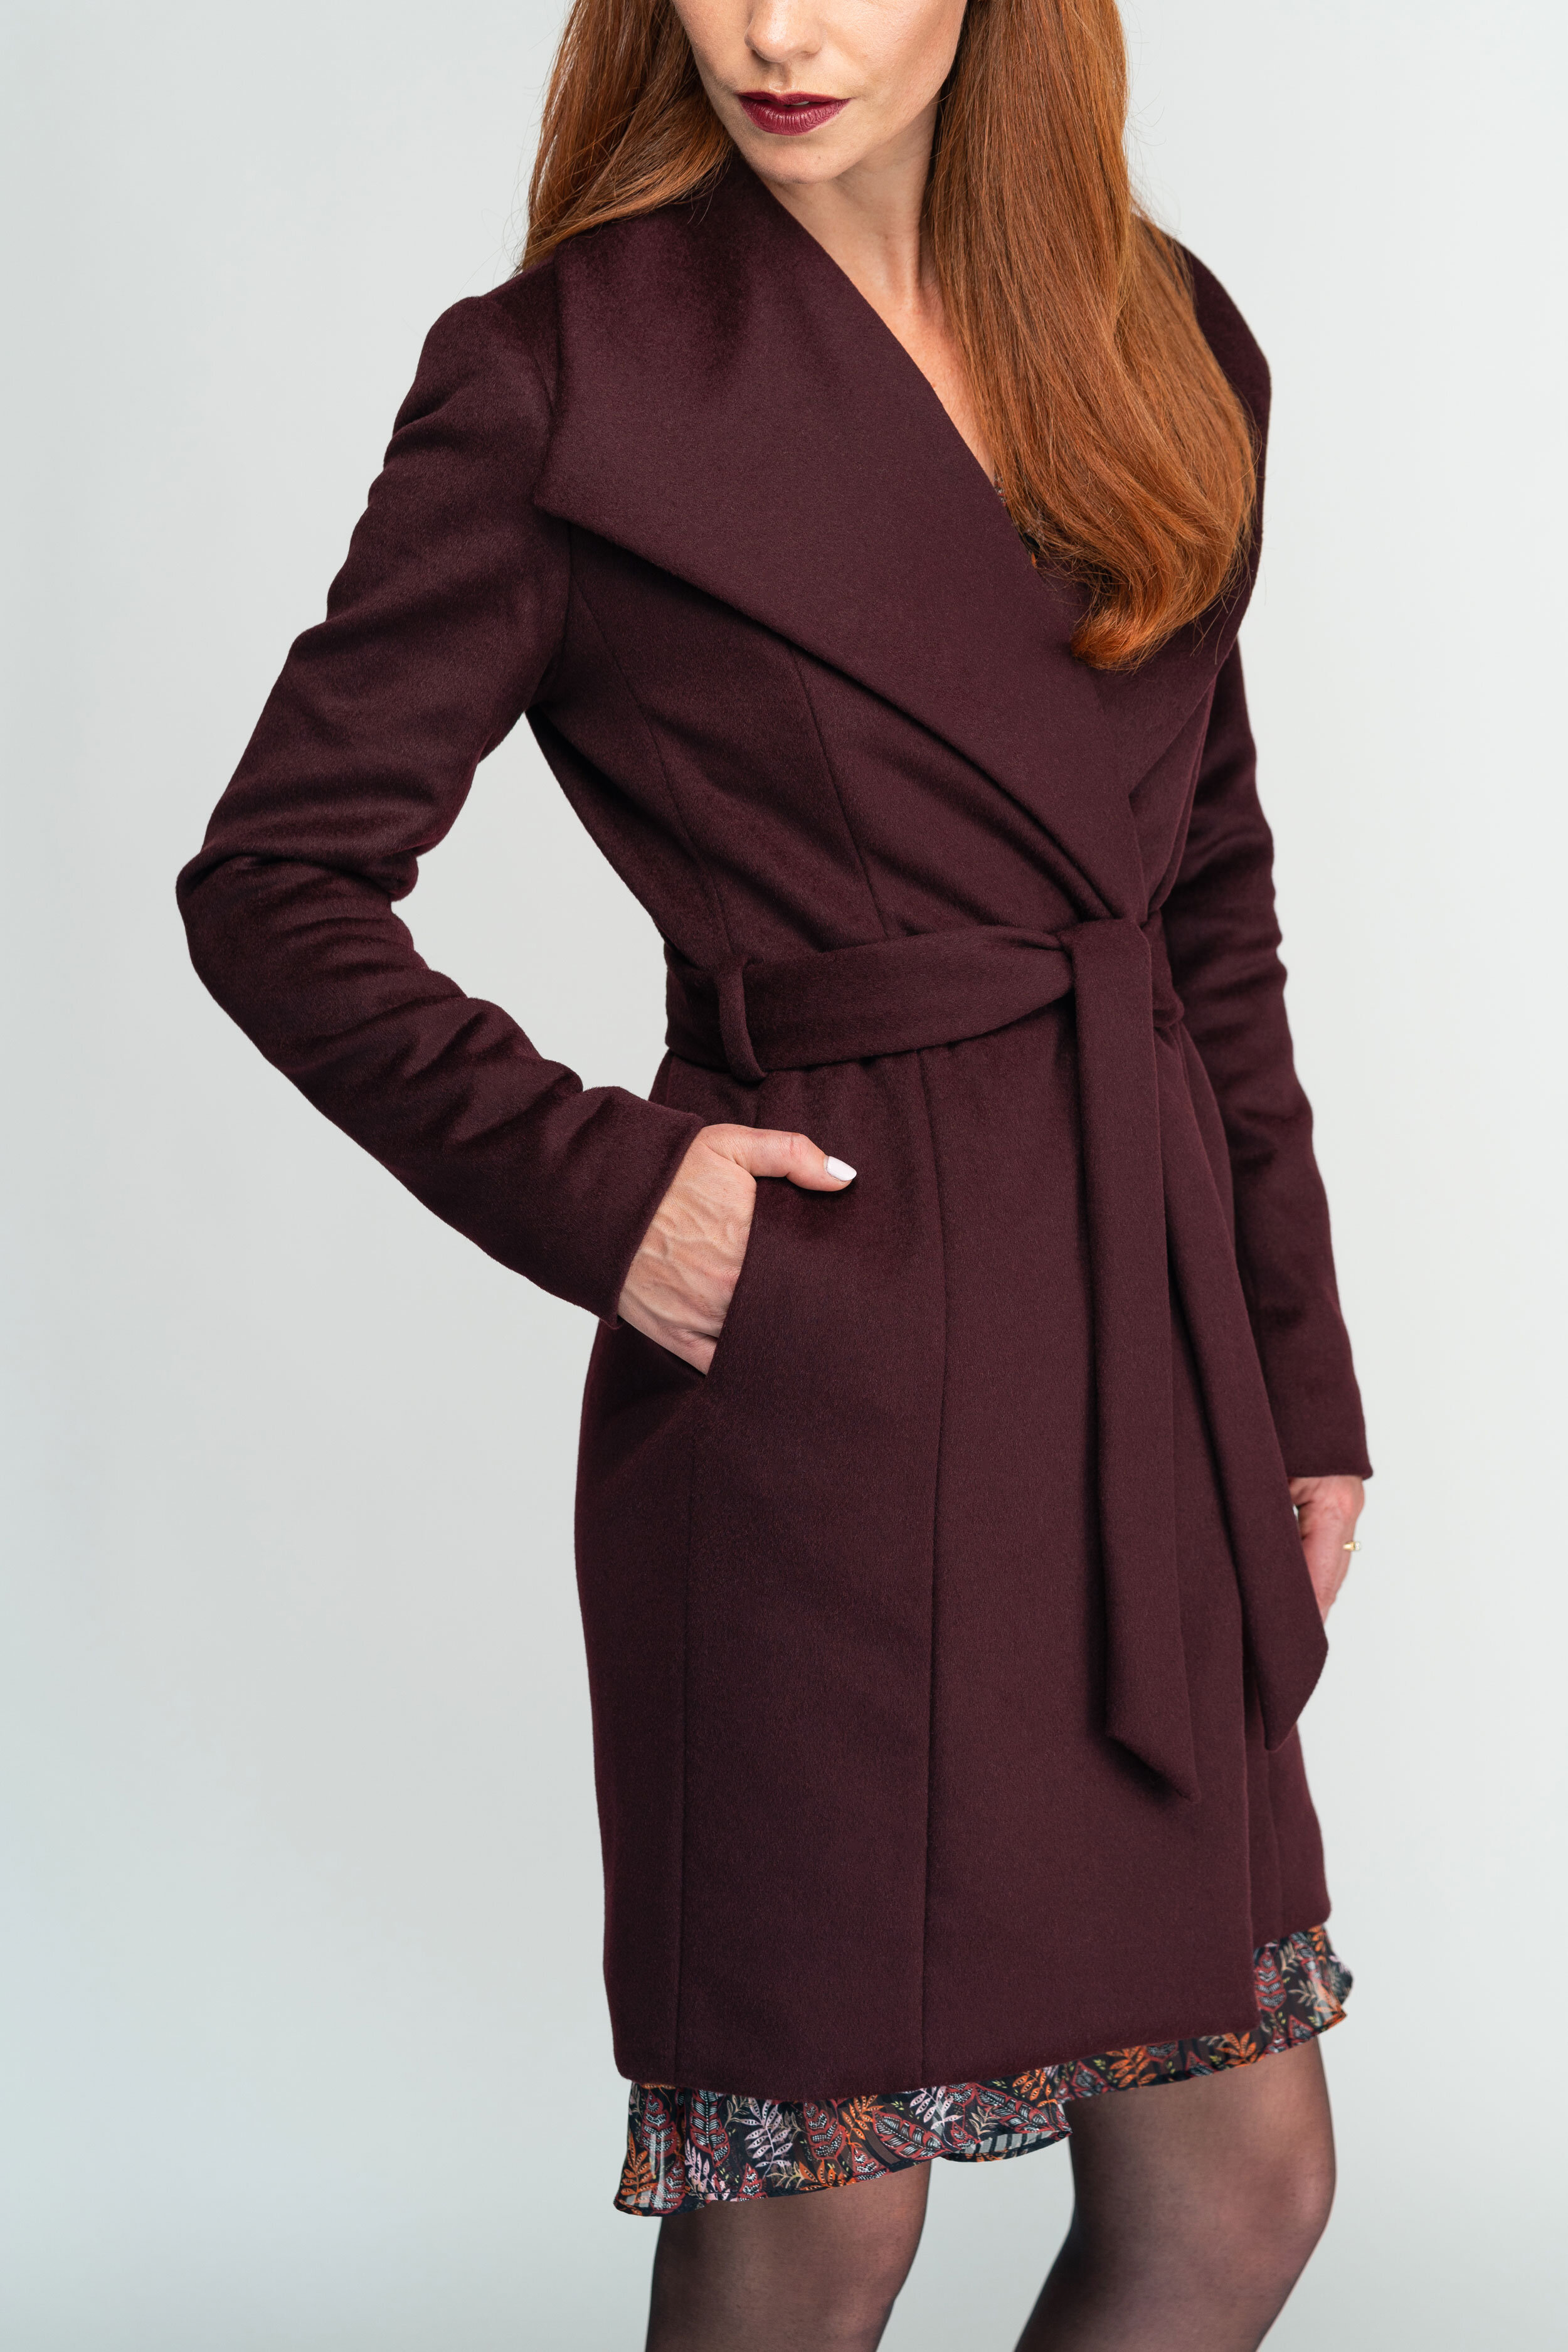 Burgundy-Wrap-Coat-Wool-Pocket.jpg